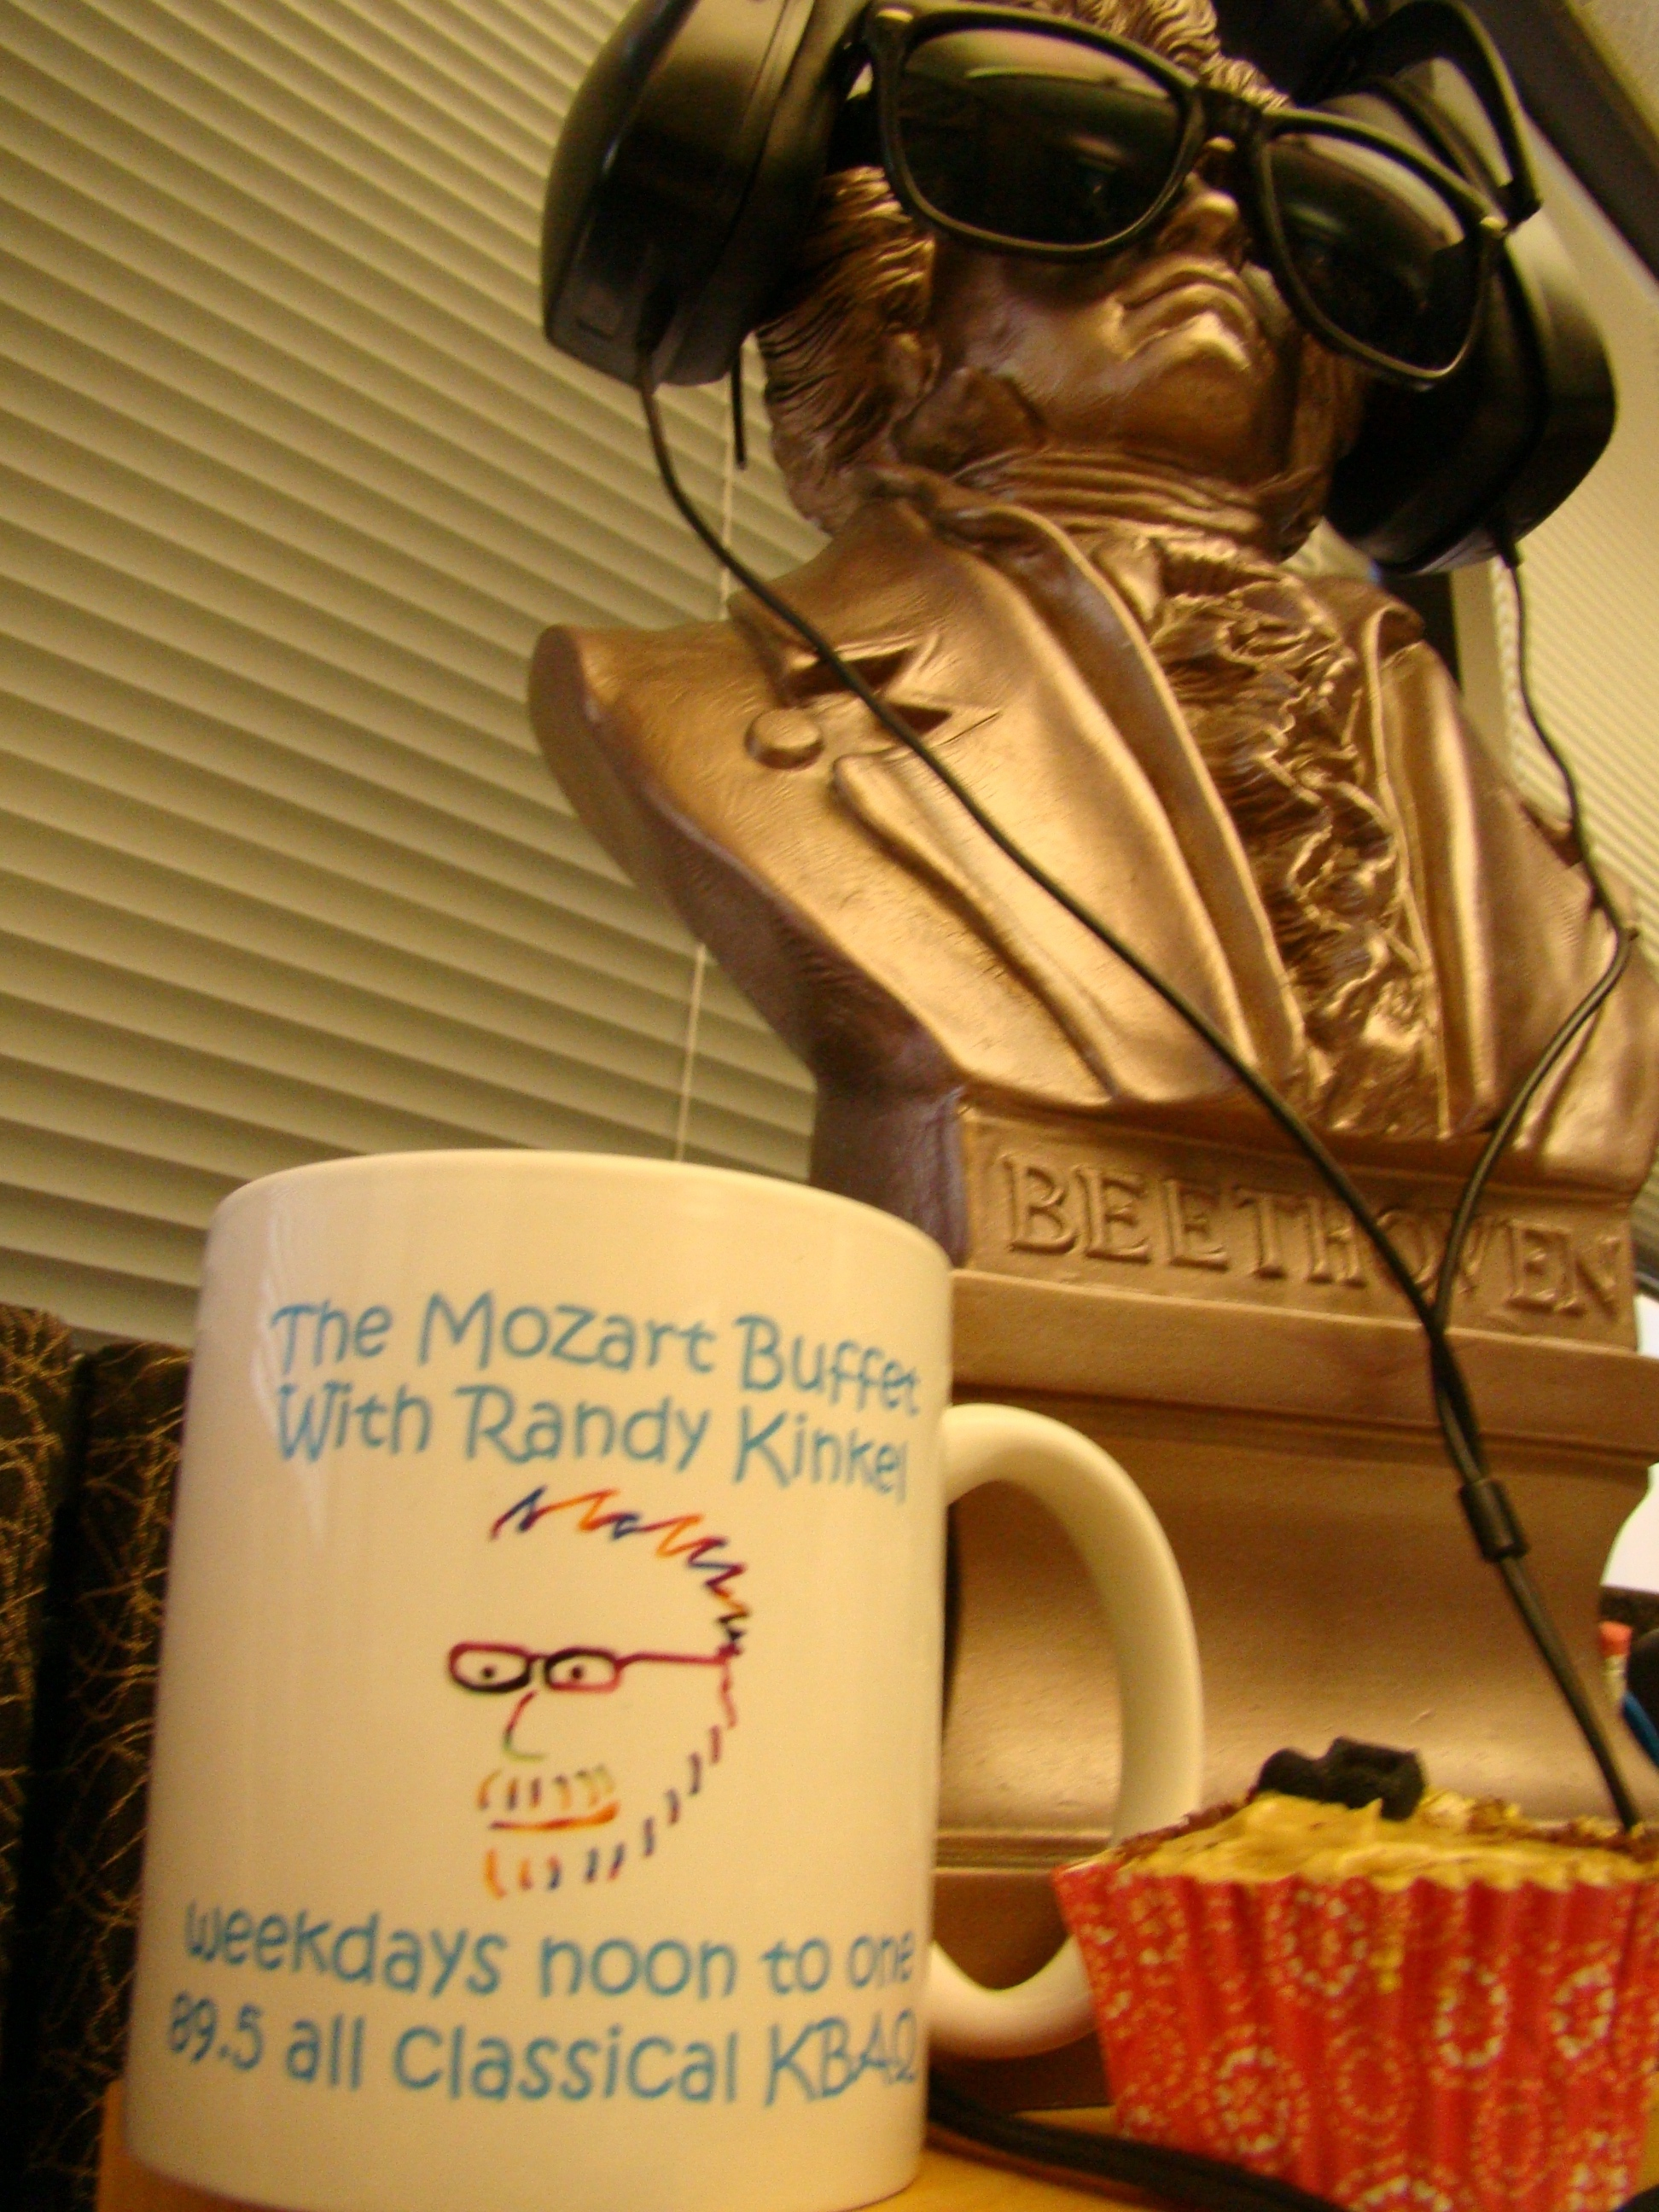 Randy Kinkel offers the Mozart Buffet Mug as a Birthday prize on the Mozart Buffet, Noon to One!